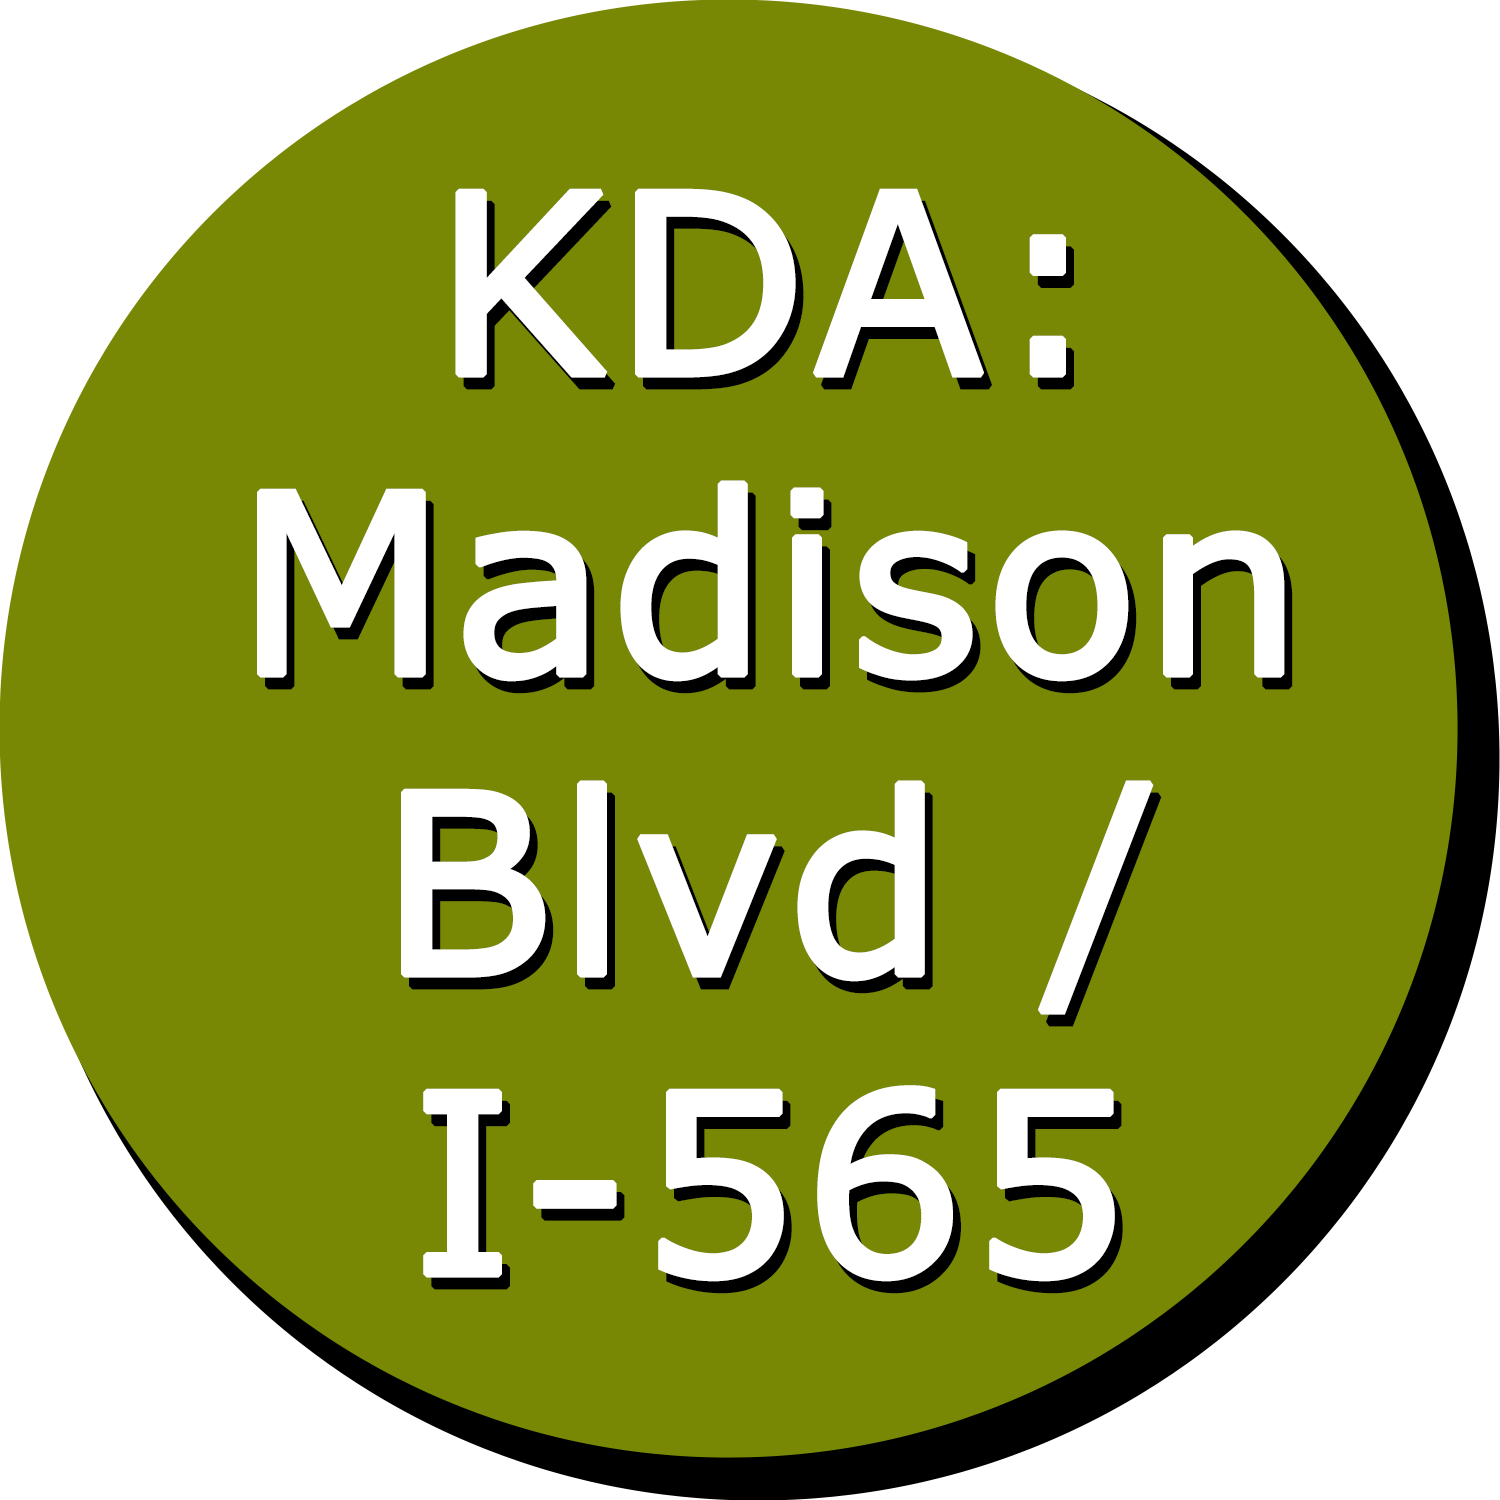 KDA: Madison Boulevard / I-565 Button